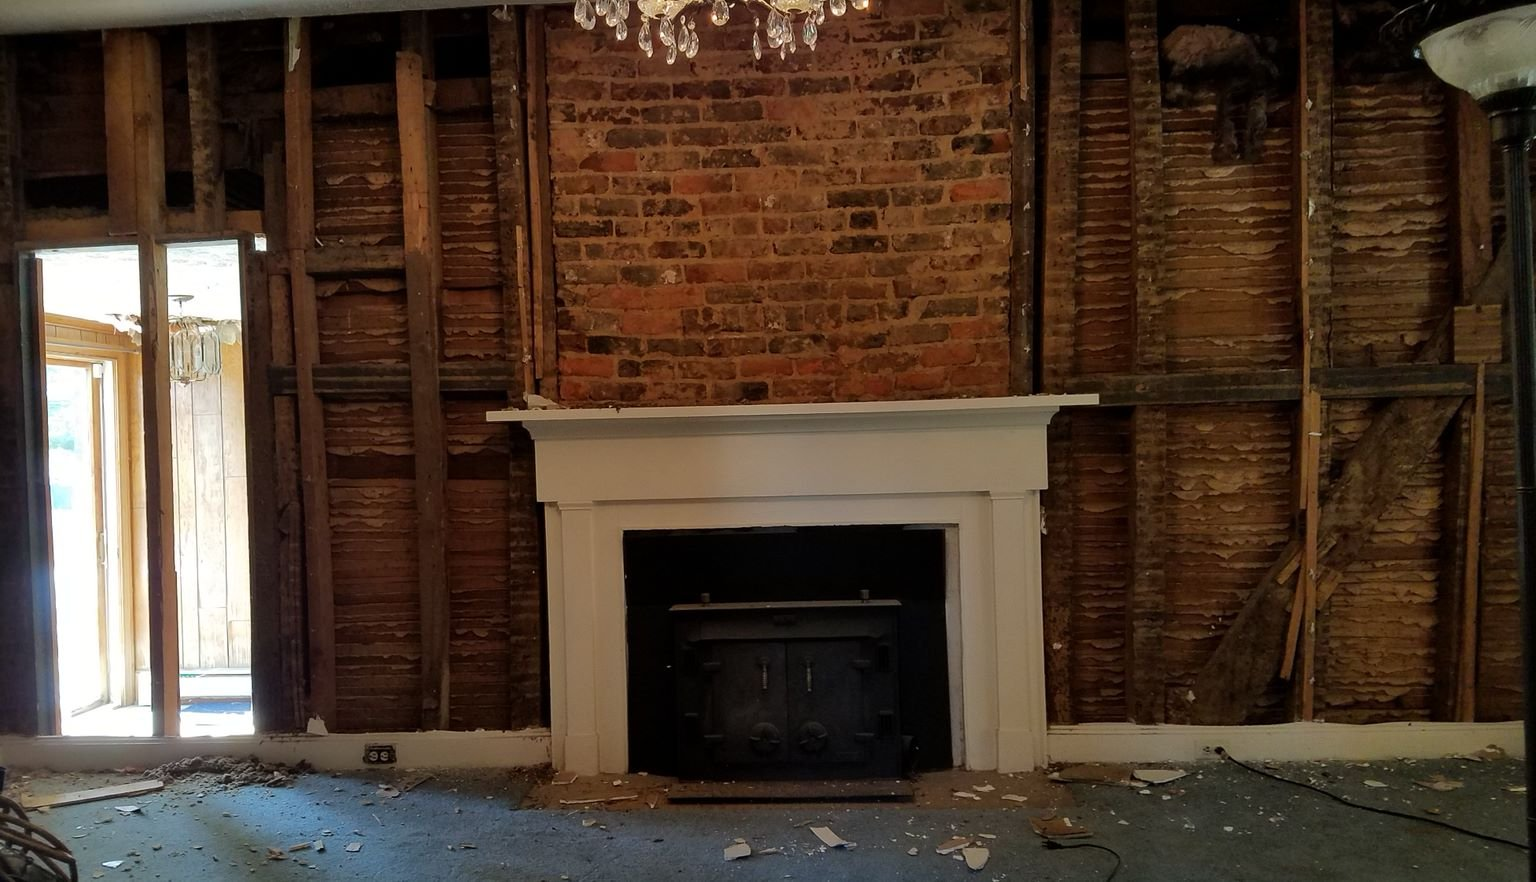 Inside the front parlor of Mead's Tavern after architectural historians removed the modern wall, revealing the orginial framework.